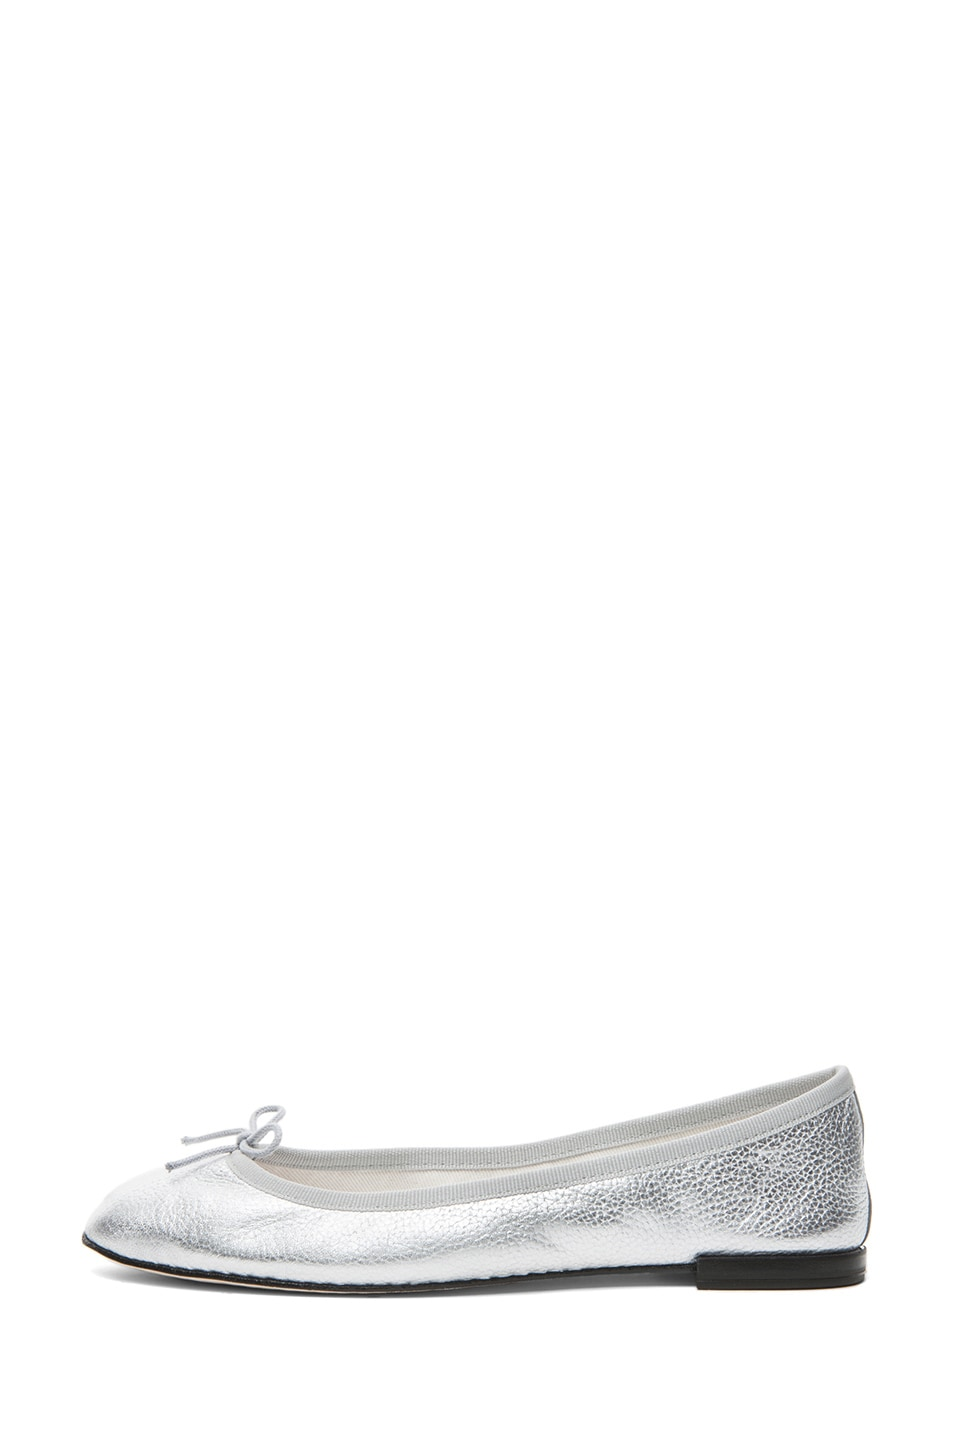 Image 1 of Repetto Distressed Goatskin Flat in Silver